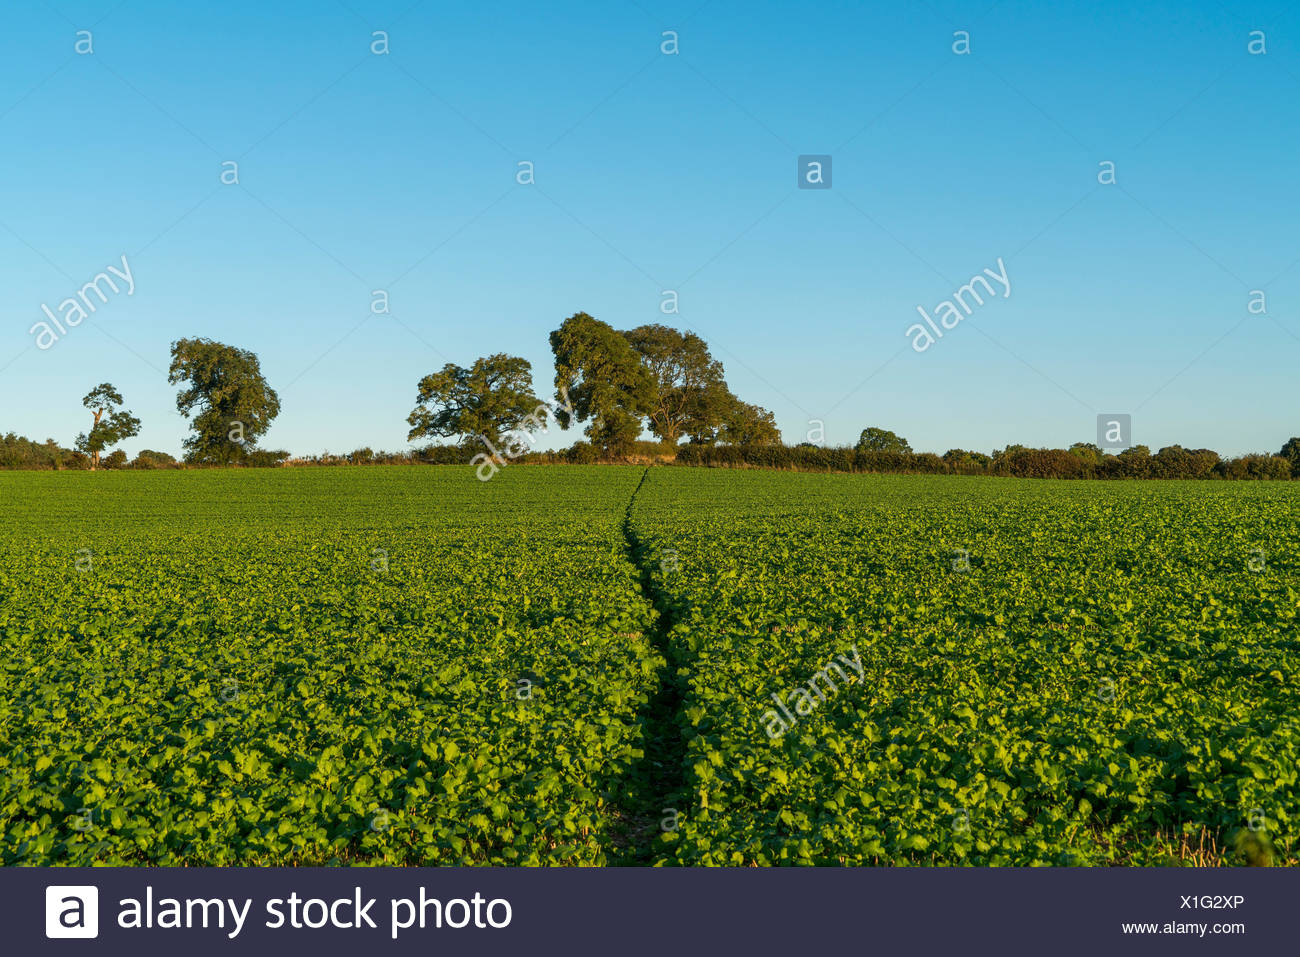 A lush green crop growing in a field with blue sky; Yorkshire, England - Stock Image